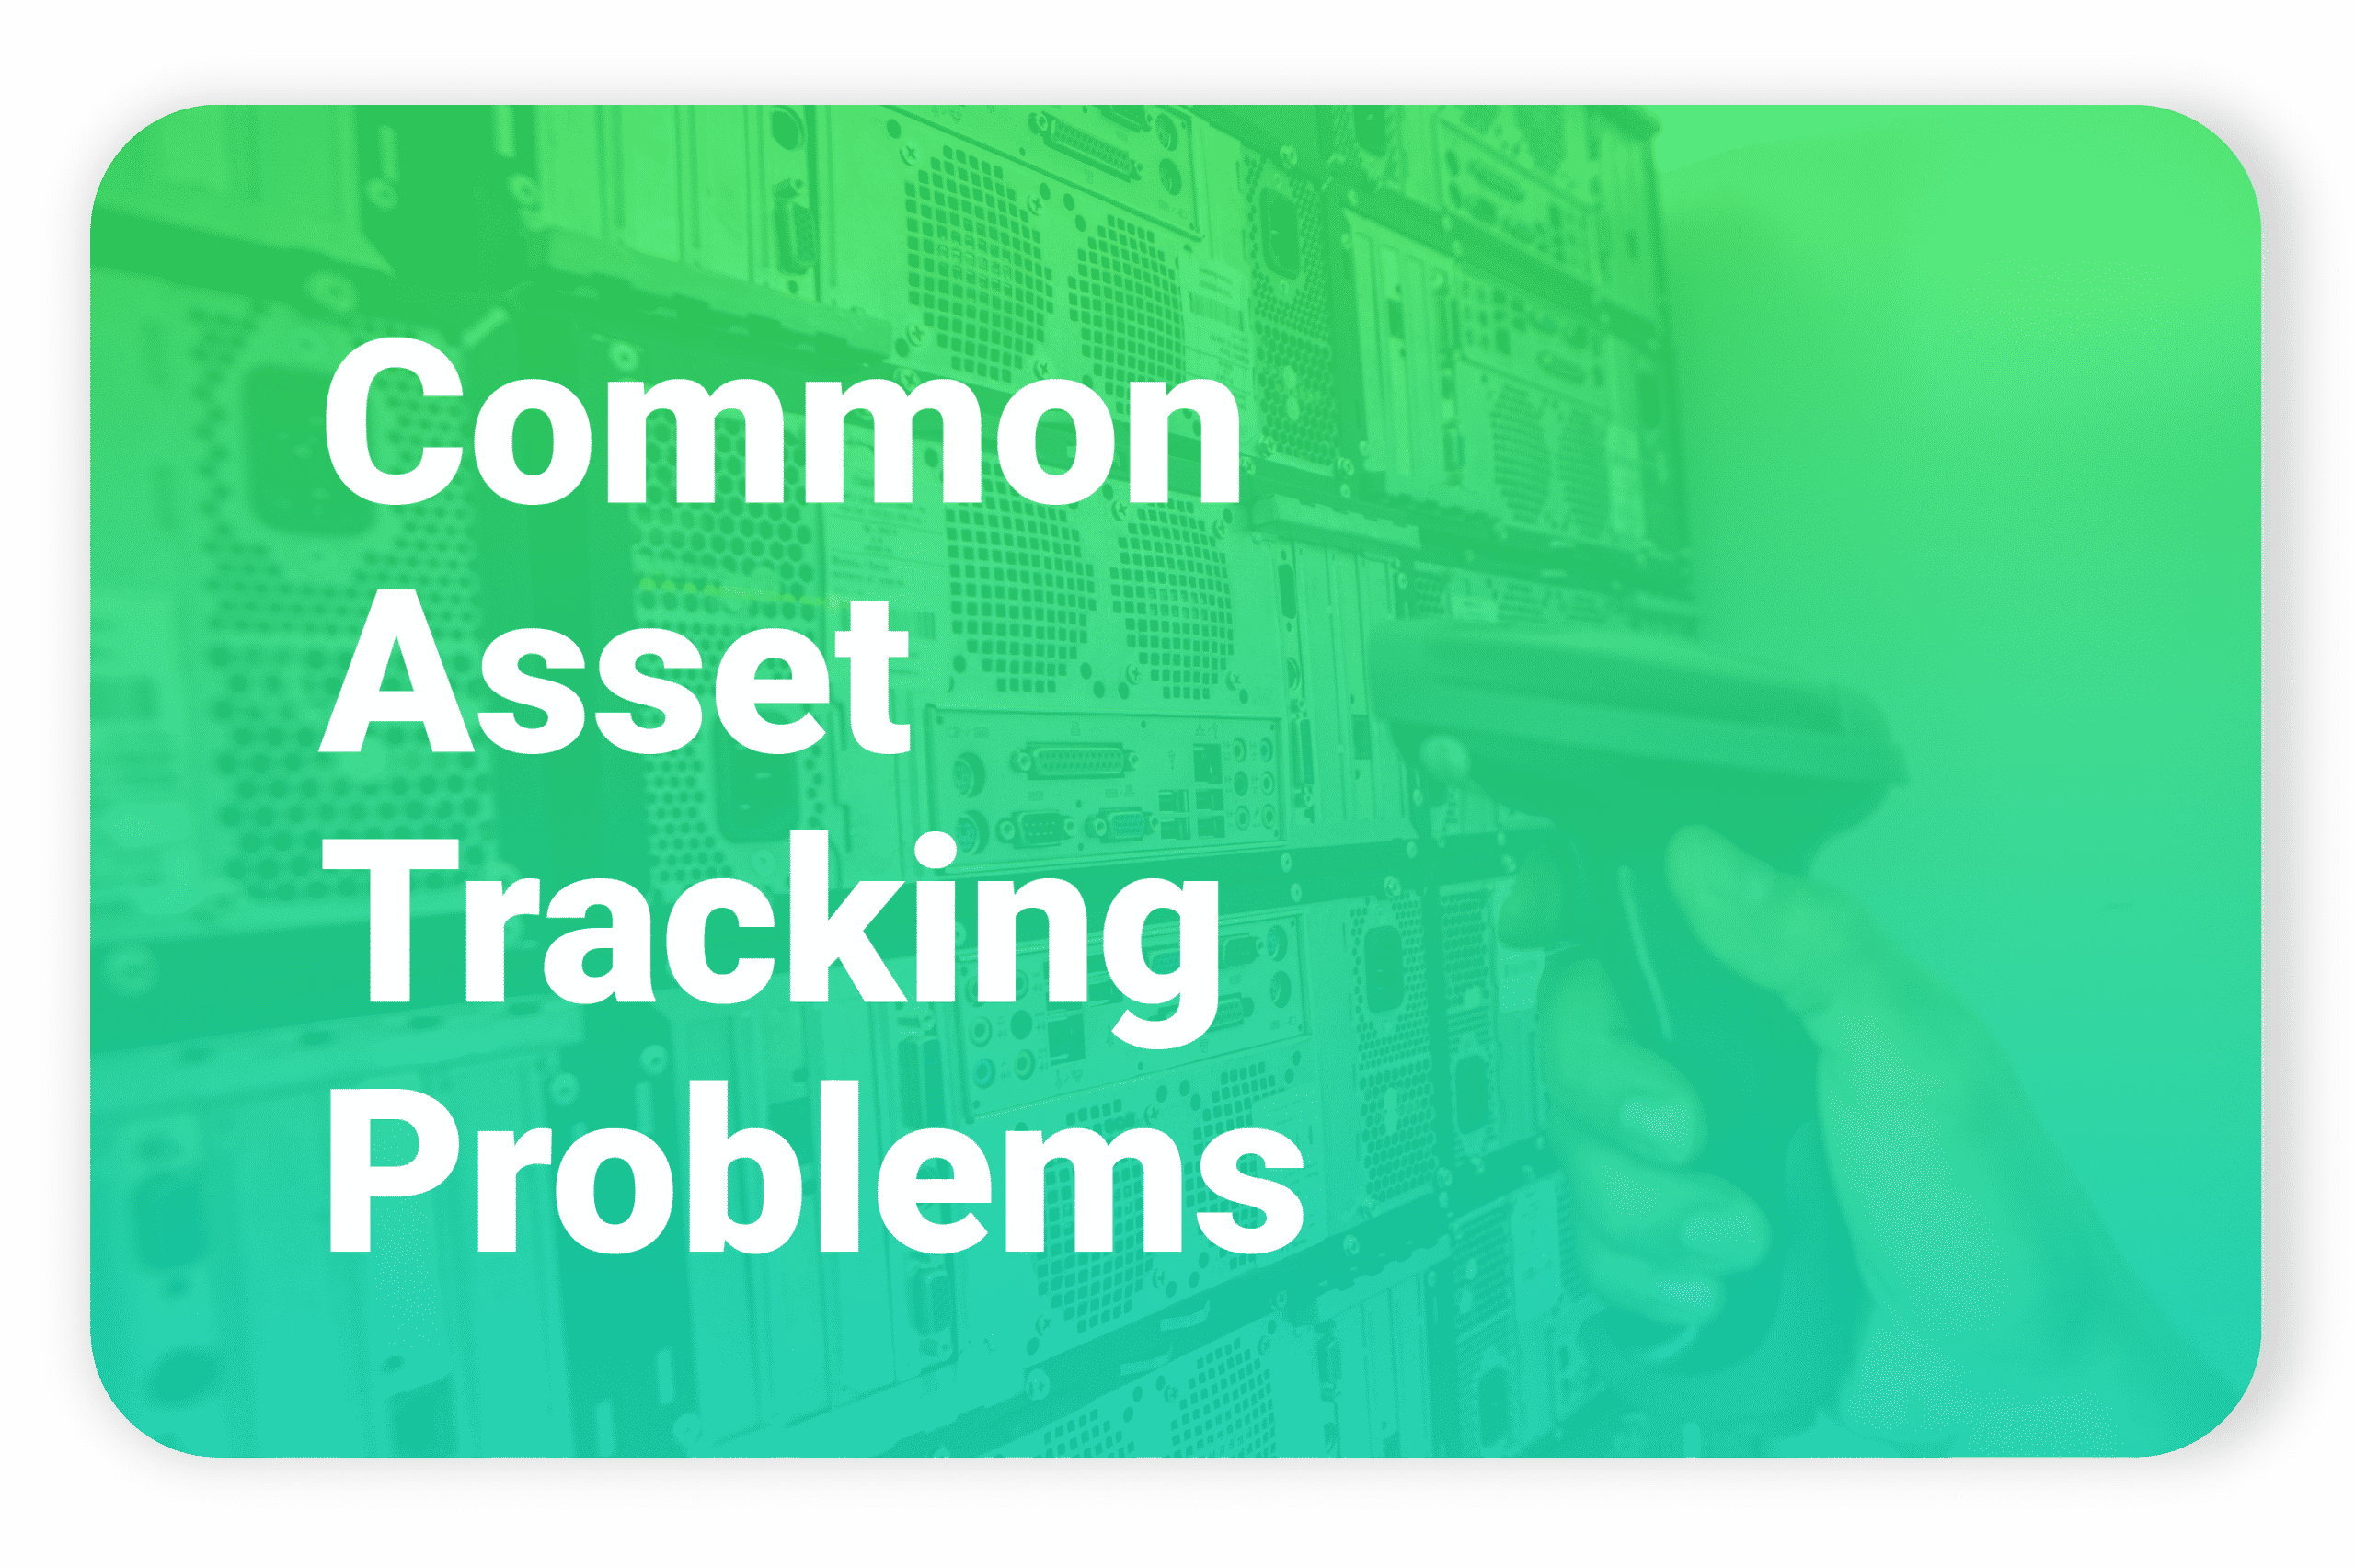 Common Asset Tracking Problems With Text